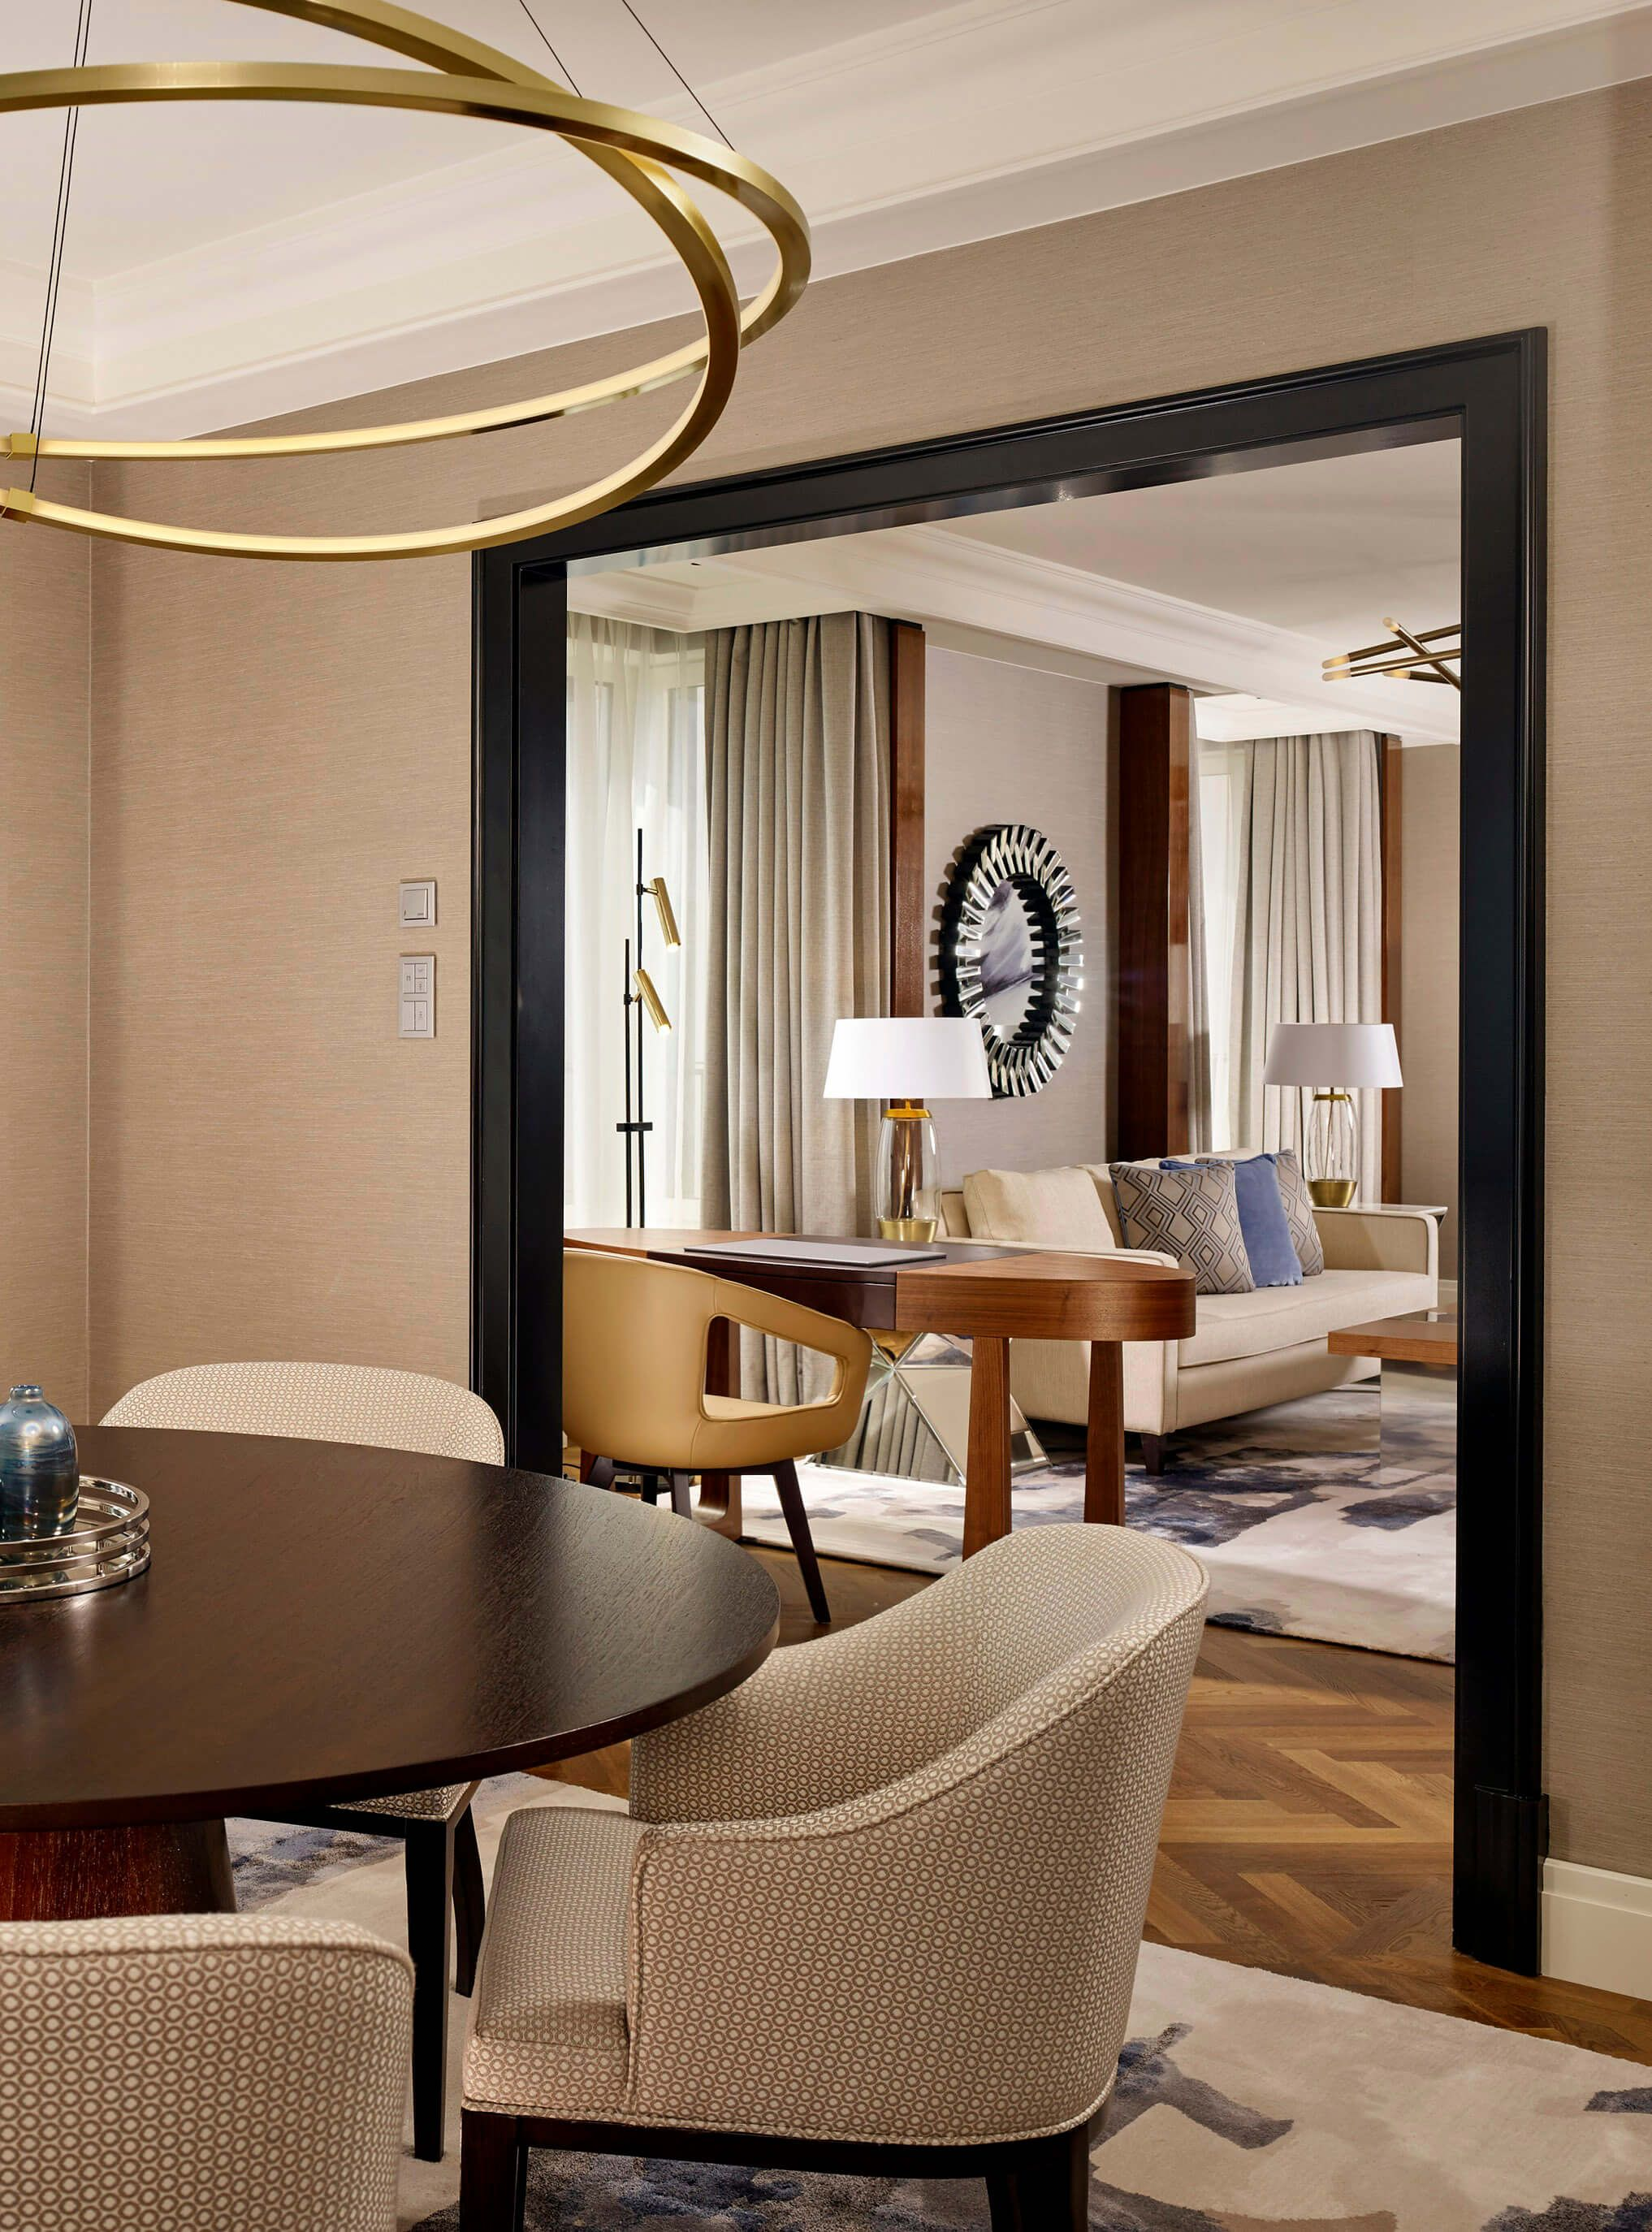 The Ritz Carlton Berlin Ga Group With Images Apartment